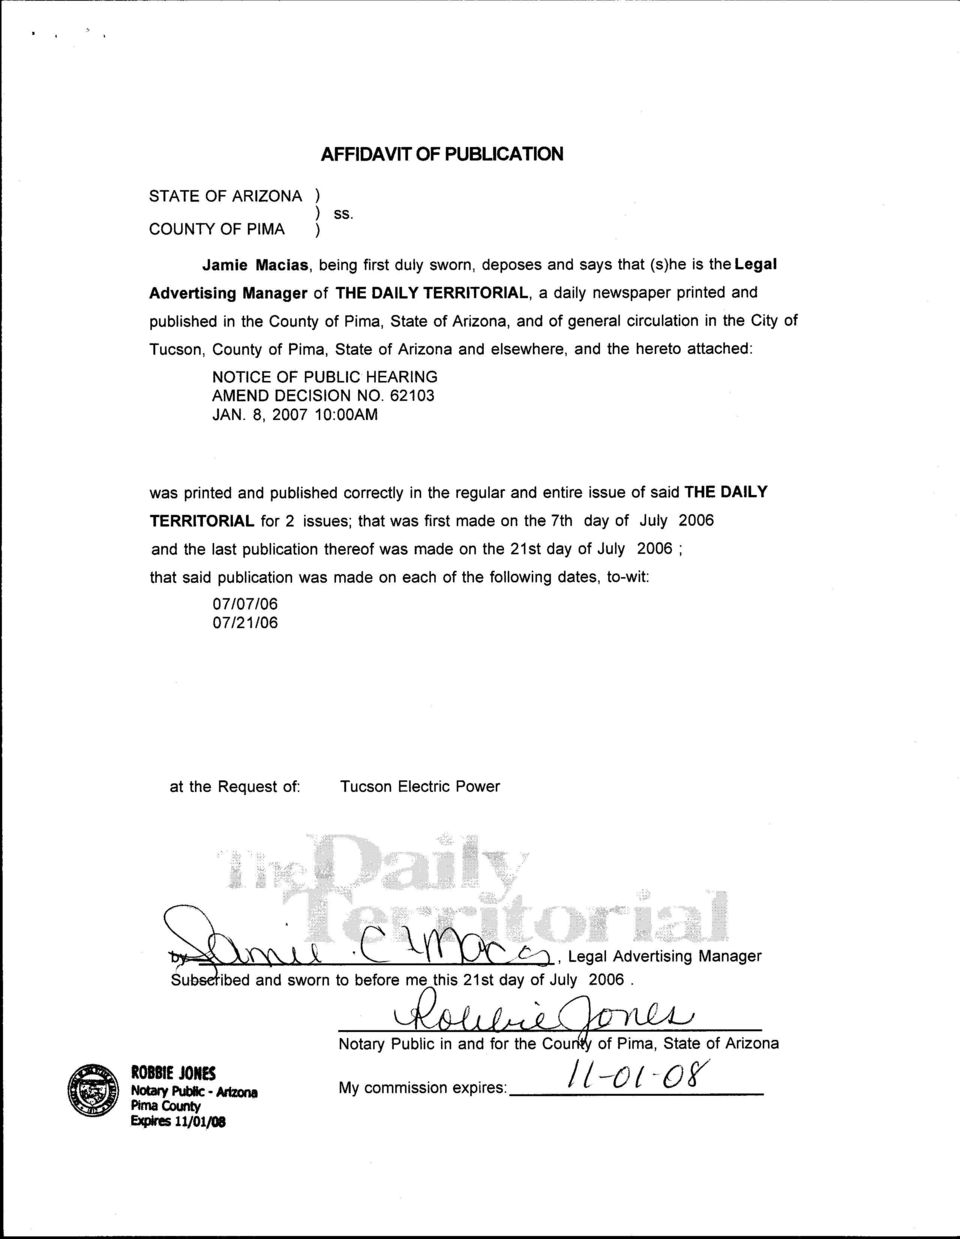 published in the County of Pima, State of Arizona, and of general circulation in the City of Tucson, County of Pima, State of Arizona and elsewhere, and the hereto attached: NOTICE OF PUBLIC HEARING